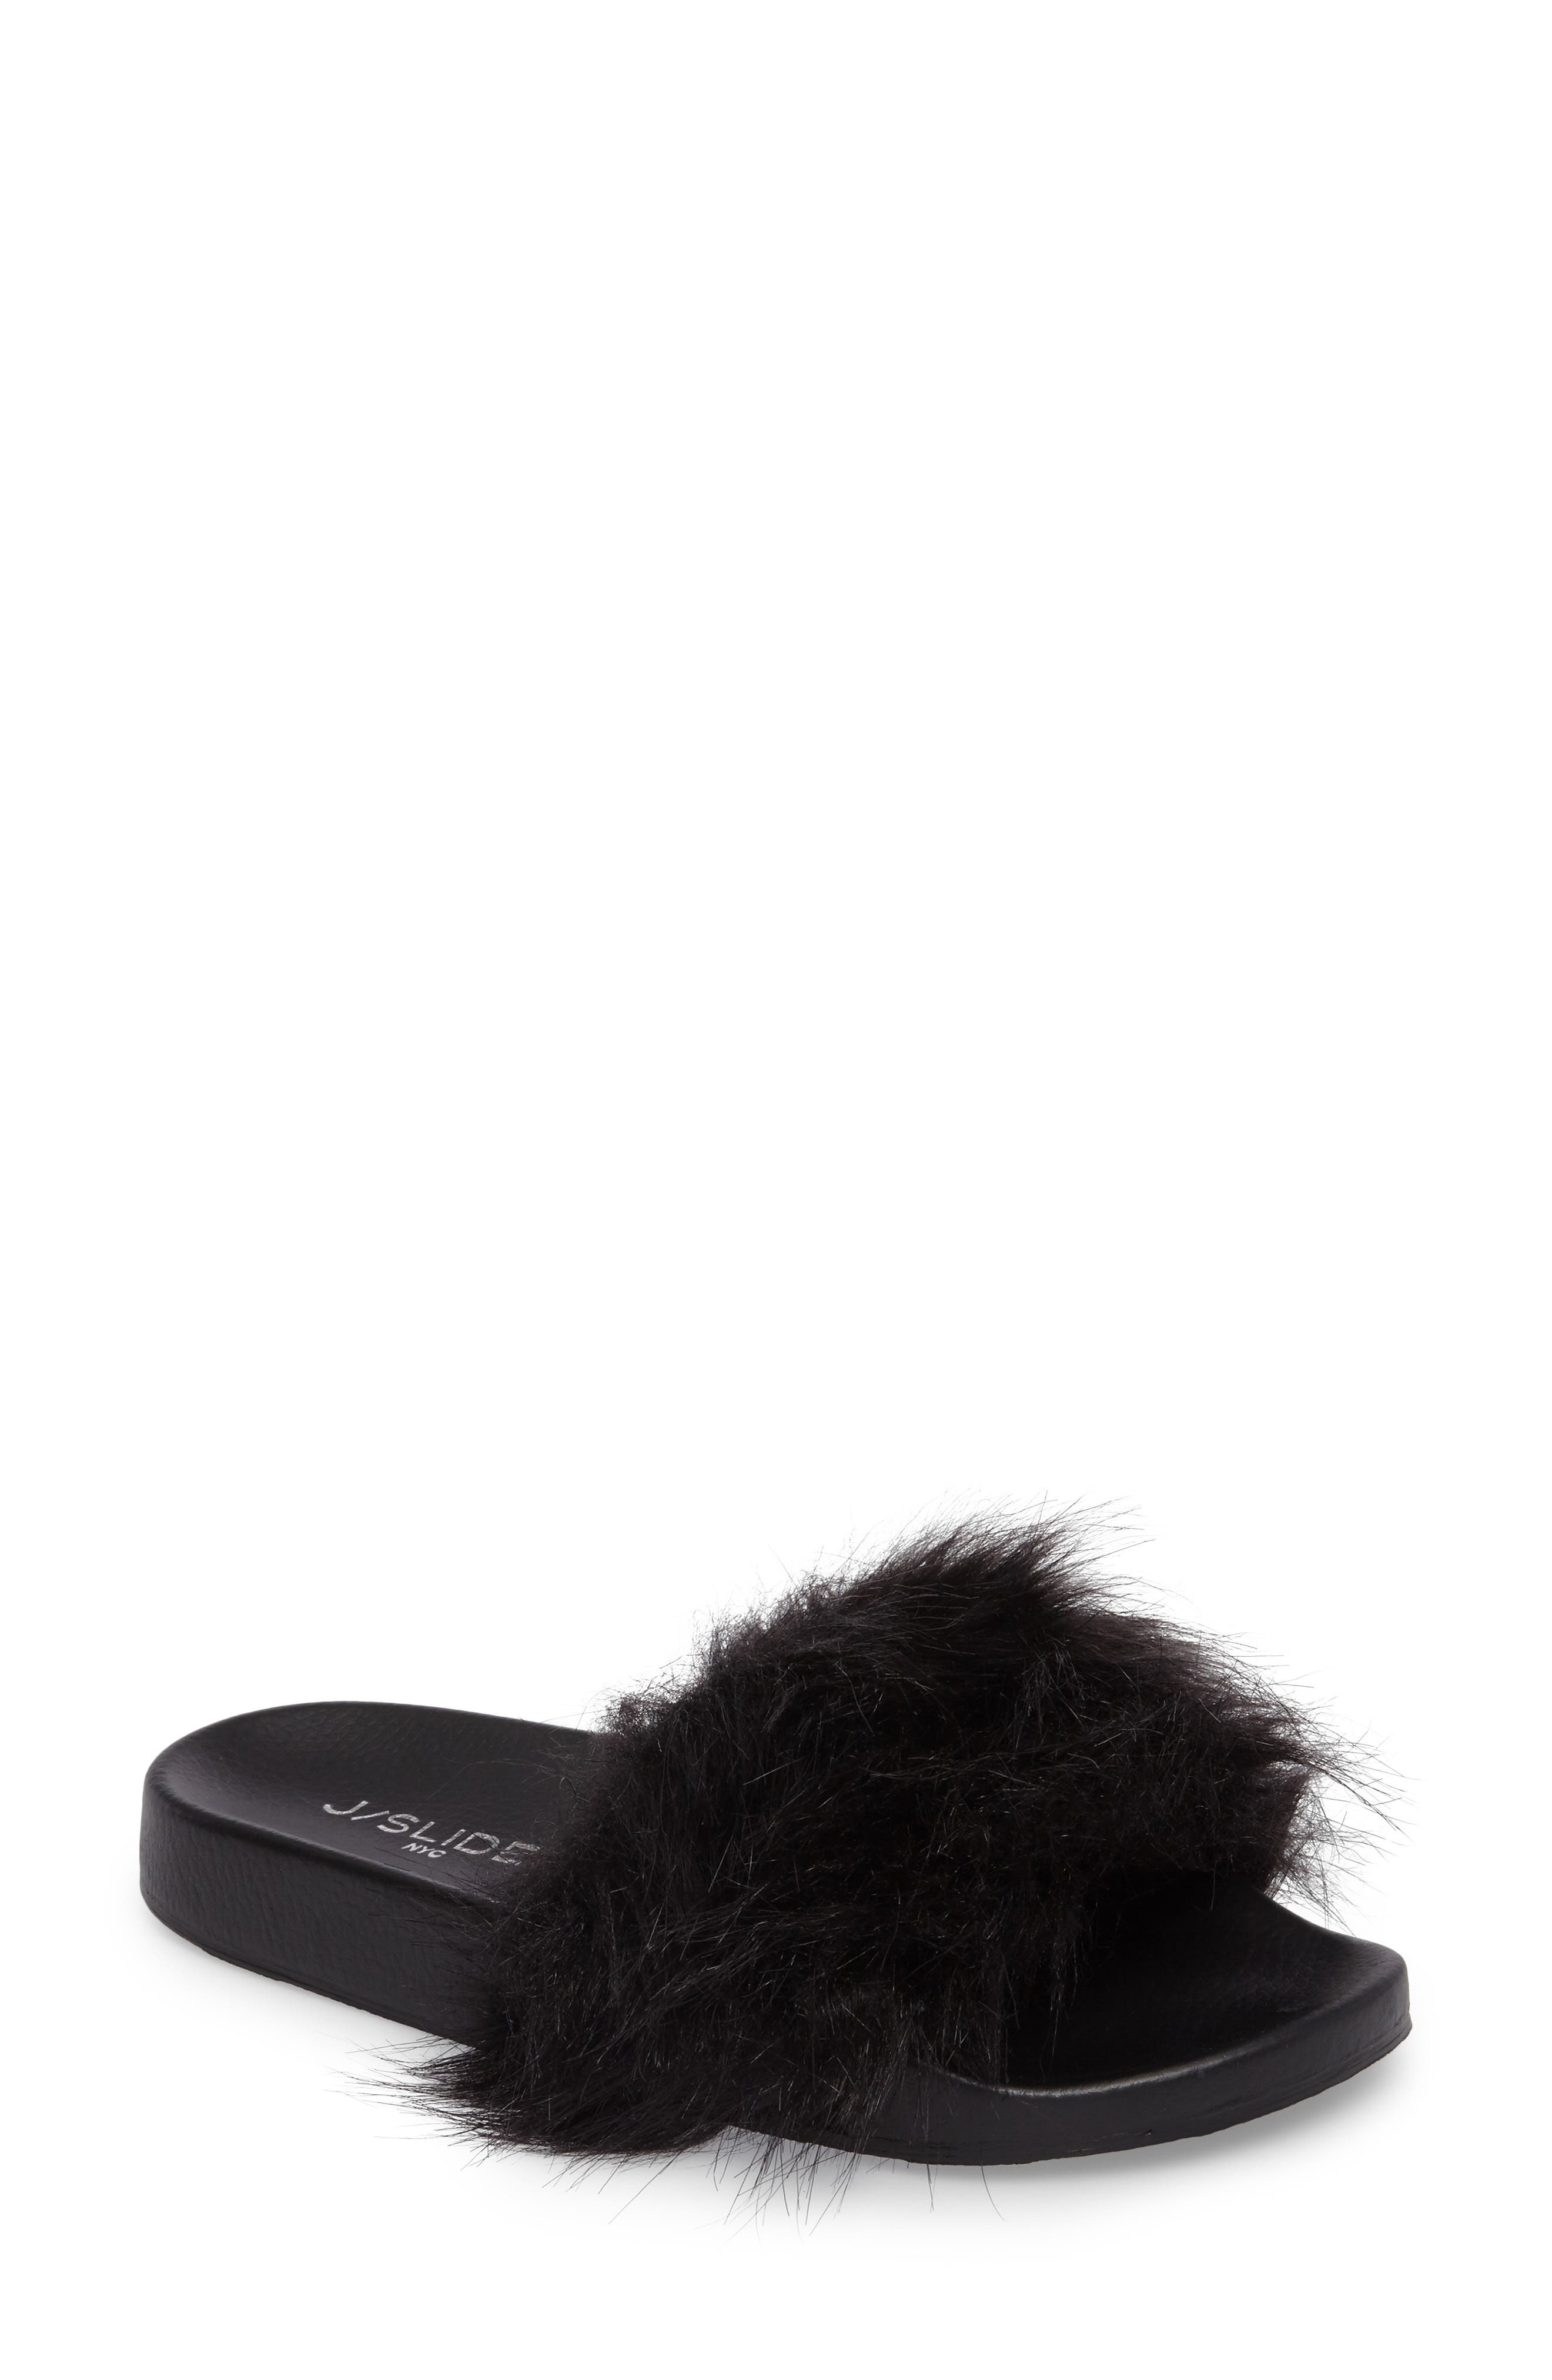 Alternate Image 1 Selected - JSlides Sophie Faux Fur Slide Sandal (Women)